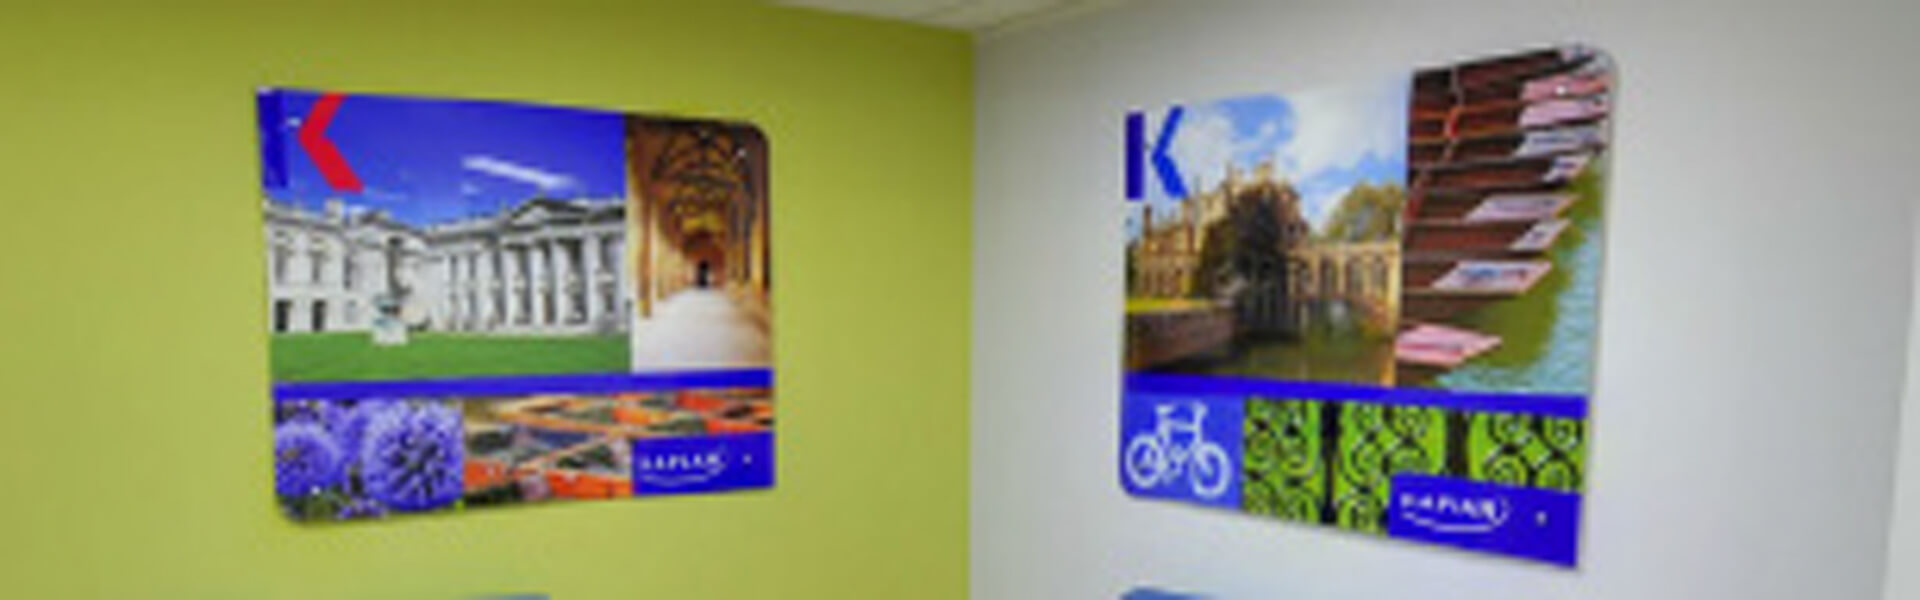 Kaplan - Interior graphics